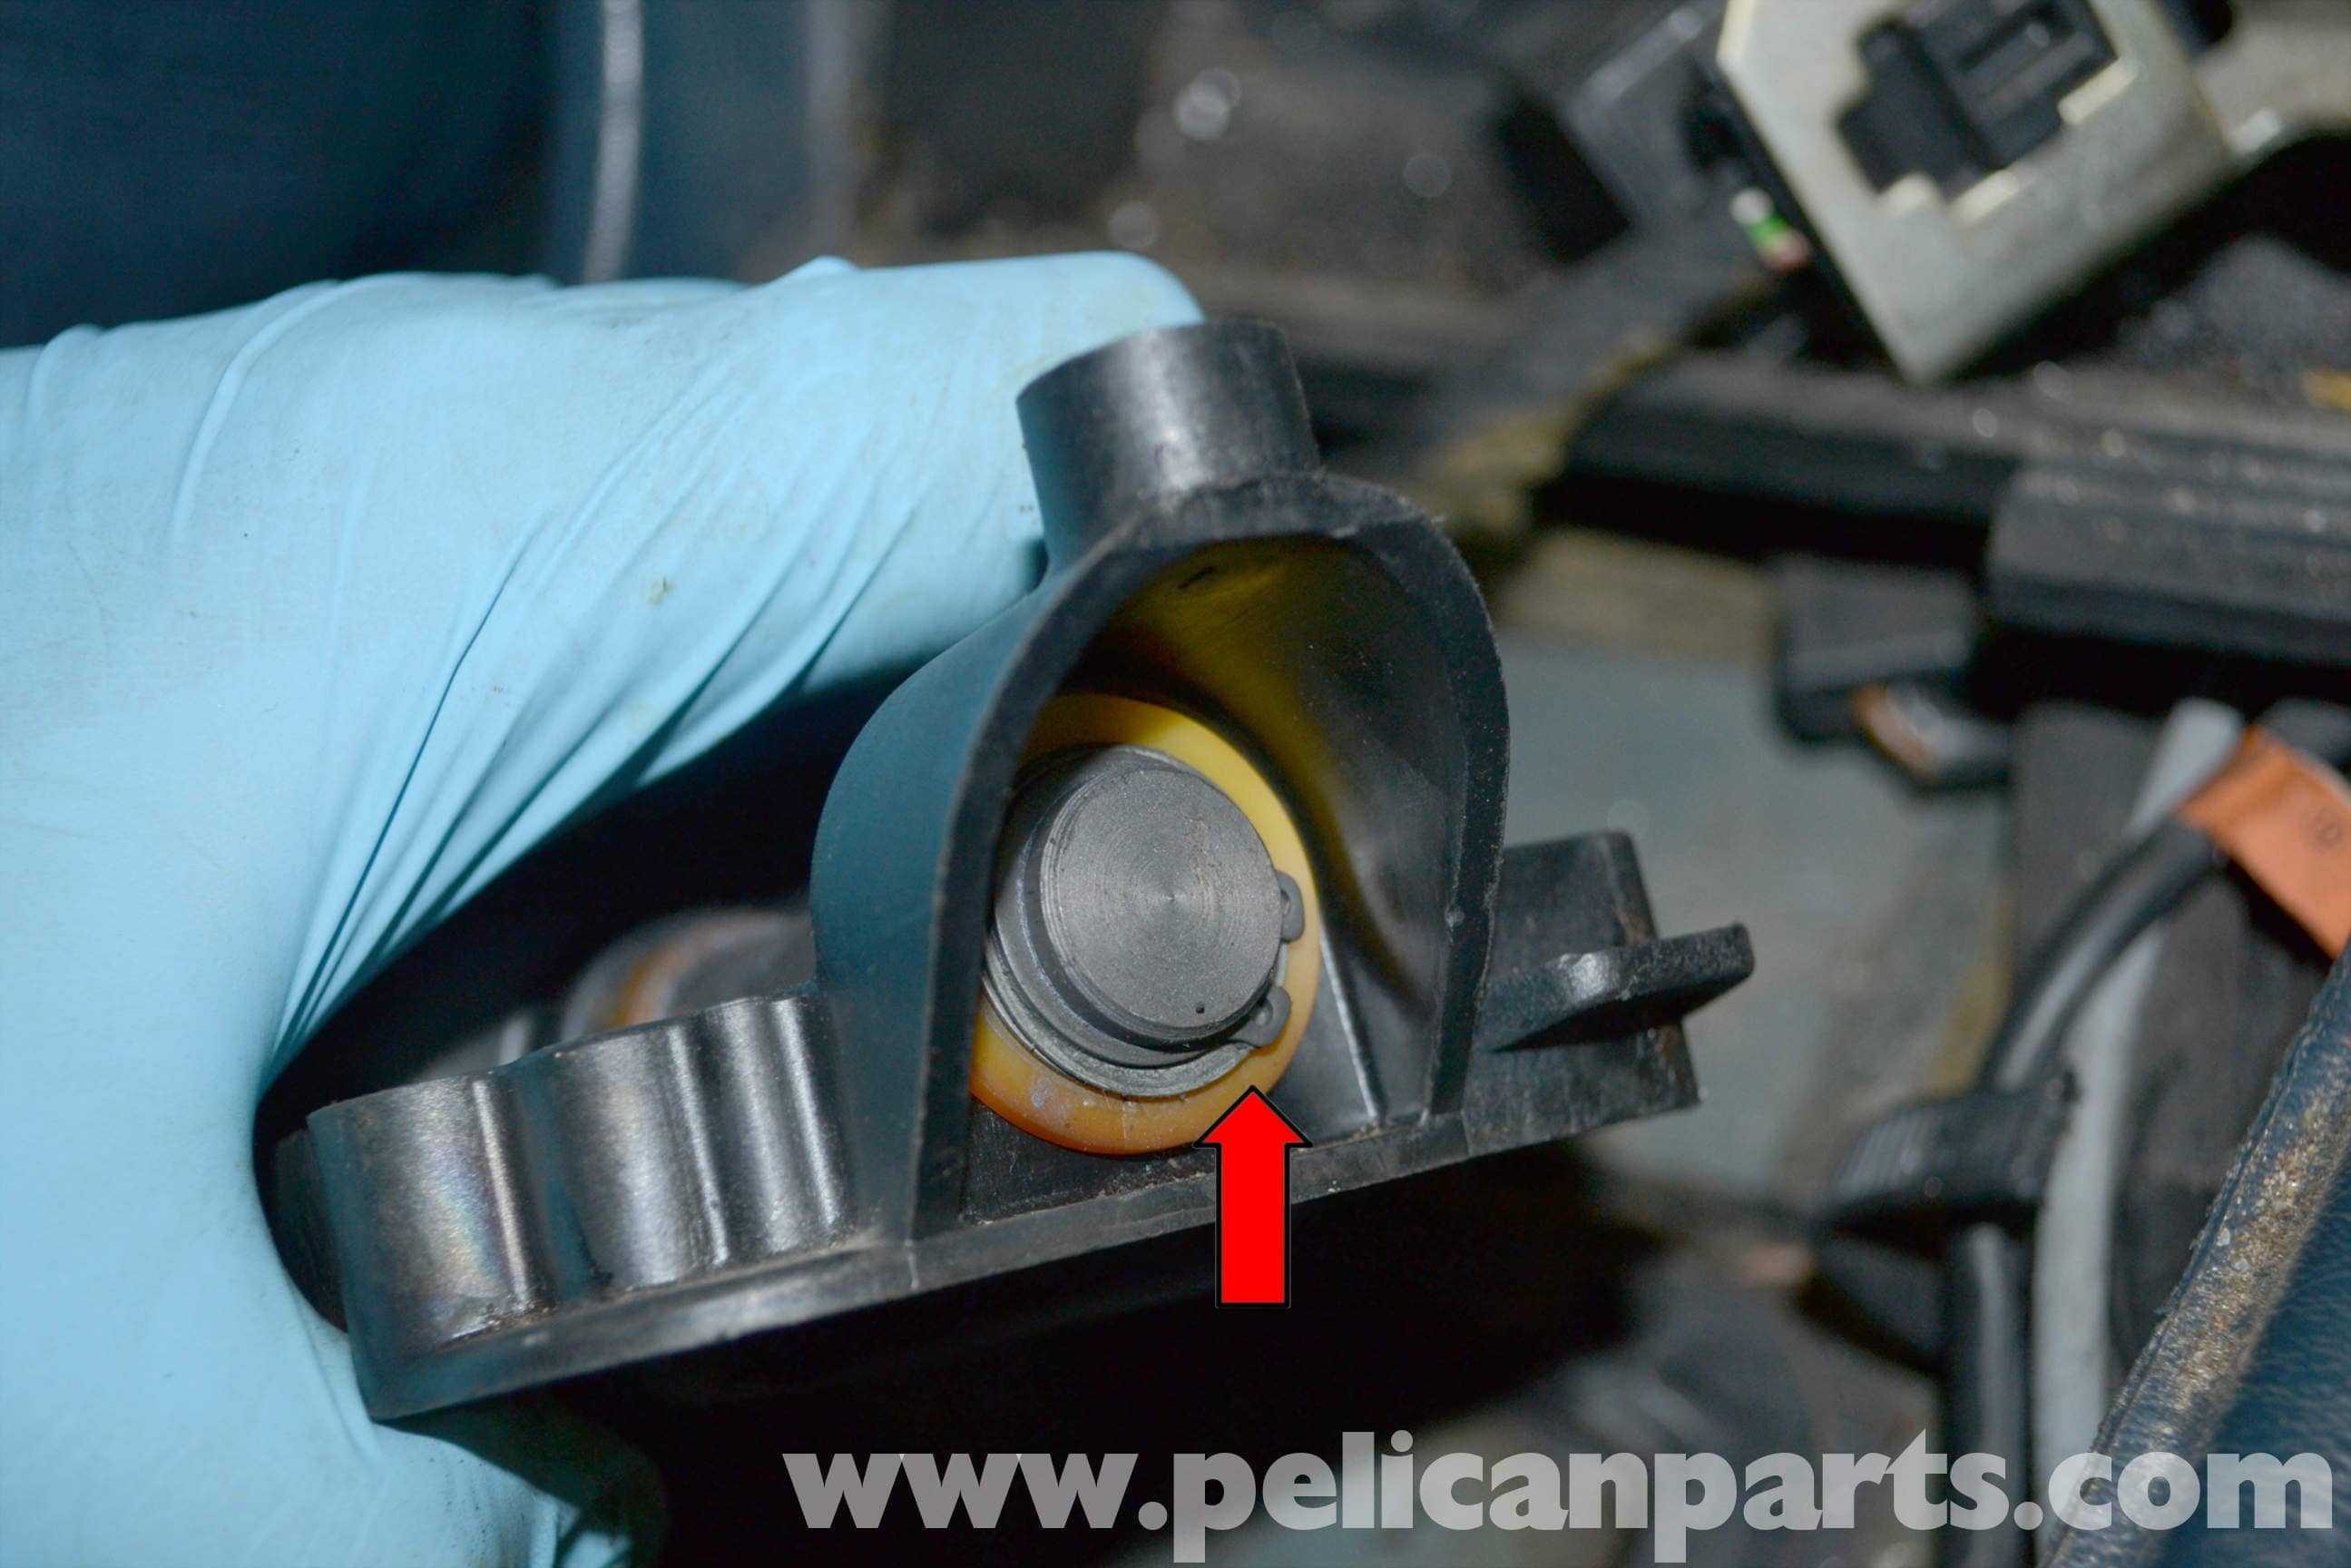 Mercedes-Benz W123 Shifter Bushing Replacement | W123 (1977